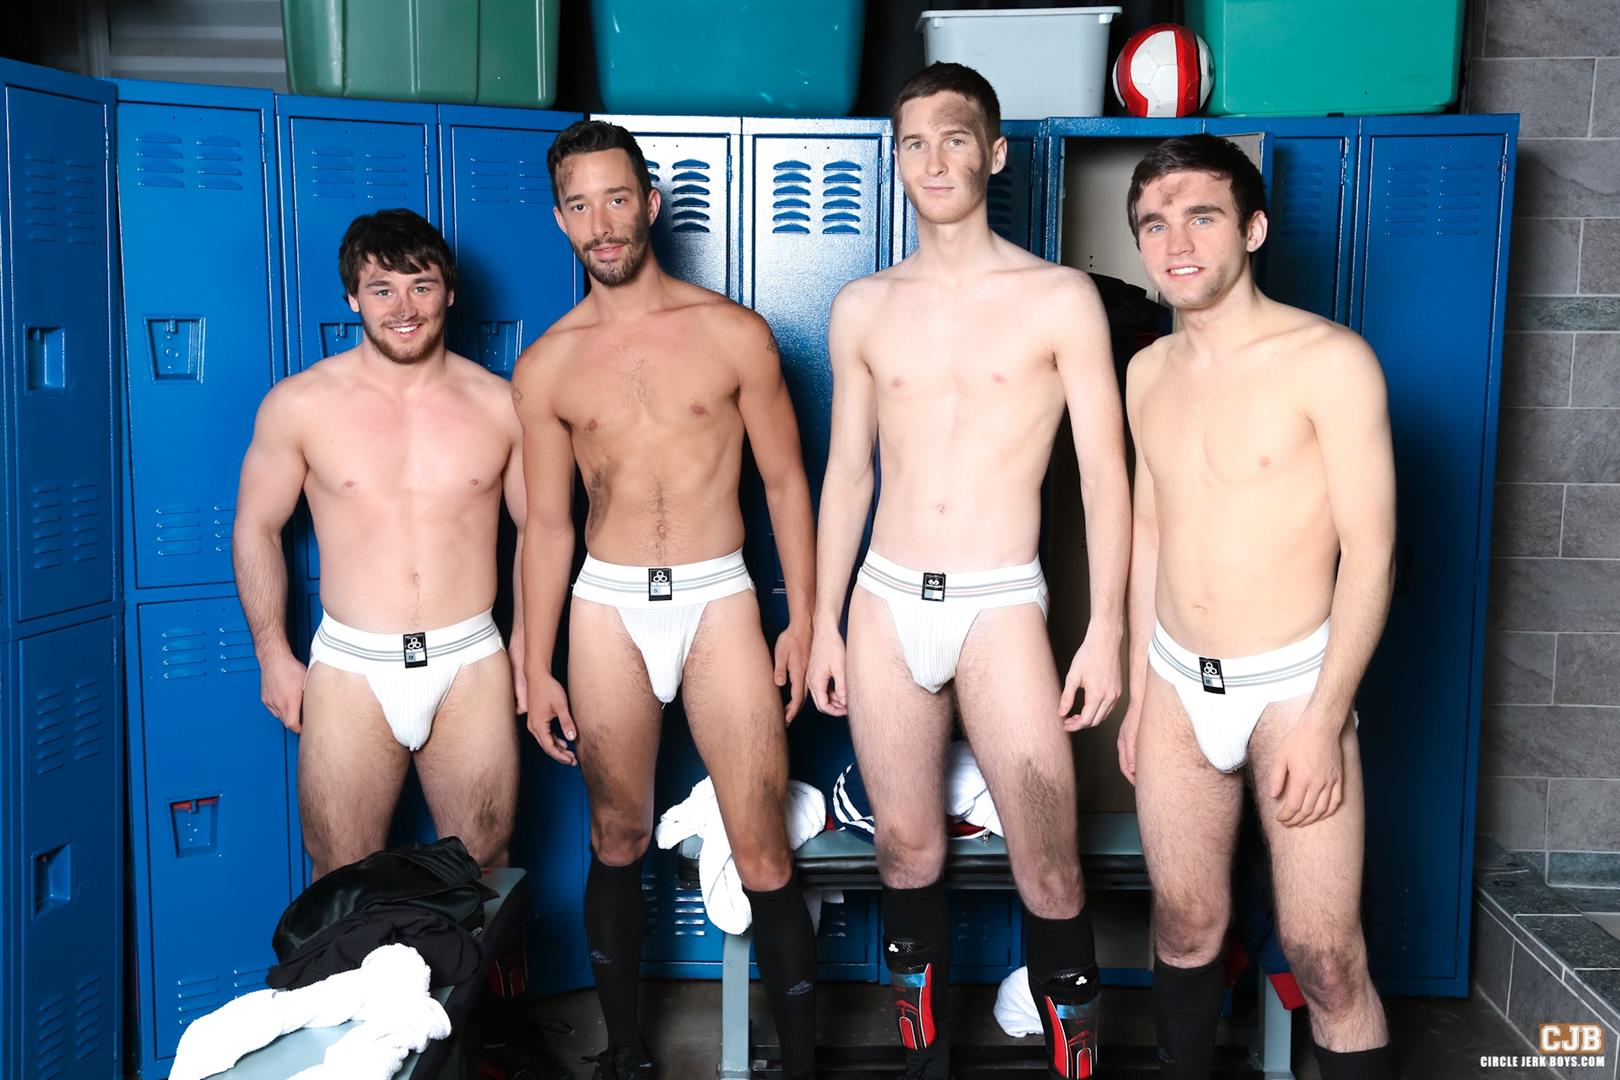 Circle-Jerk-Boys-Andrew-Collins-and-Isaac-Hardy-and-Josh-Pierce-and-Scott-Harbor-Soccer-Guys-Sucking-Cock-Amateur-Gay-Porn-01.jpg